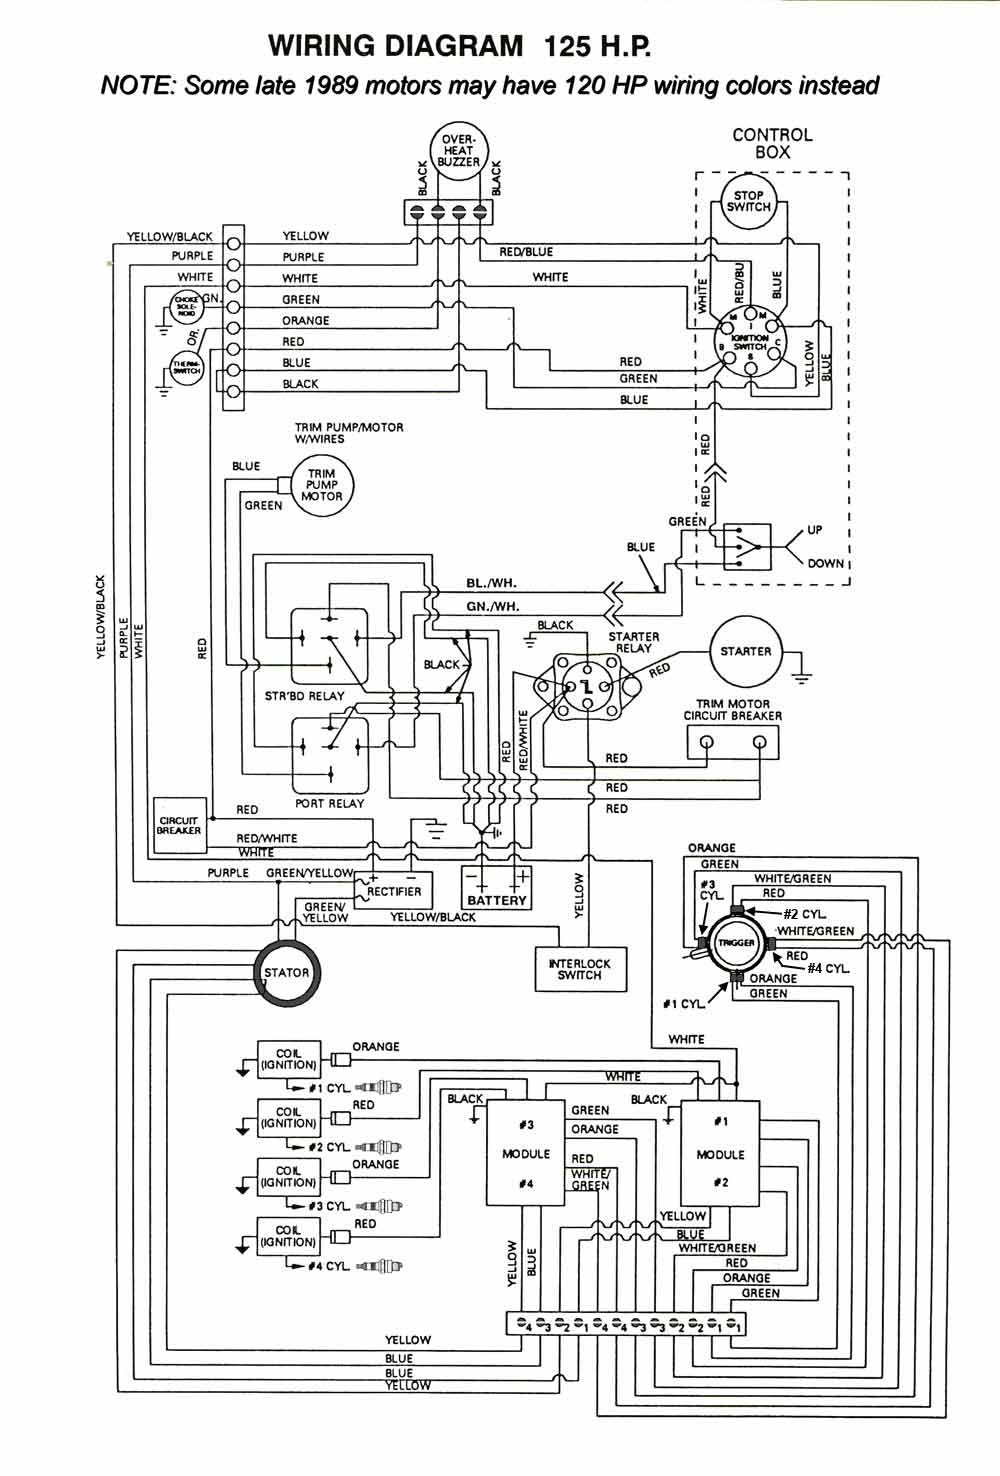 wiring diagram yamaha outboard ignition switch whirlpool top load washer parts mastertech marine -- chrysler & force diagrams